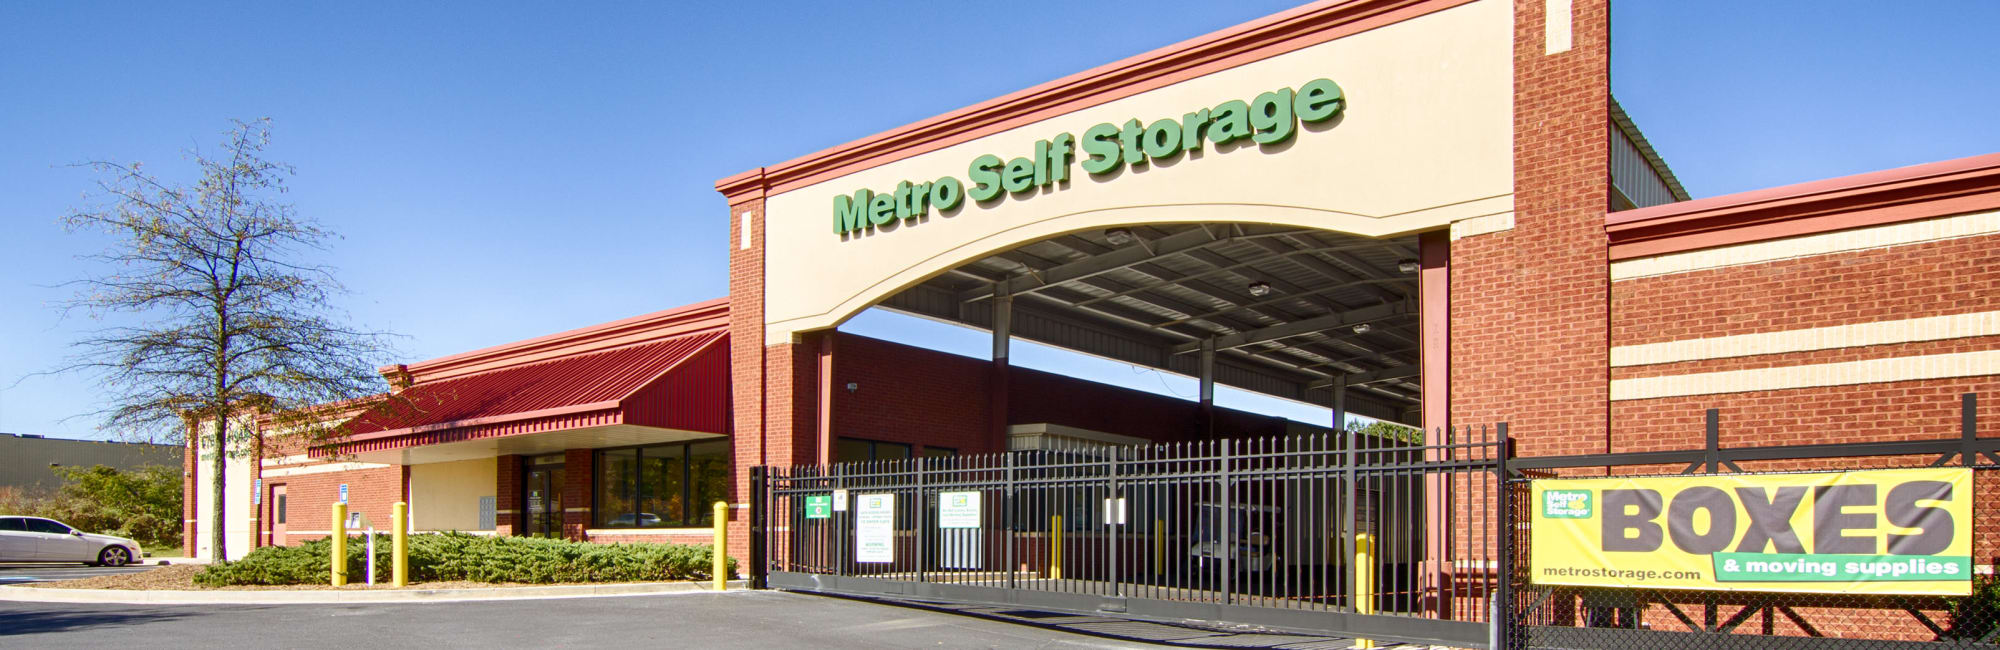 Metro Self Storage in Rex, GA